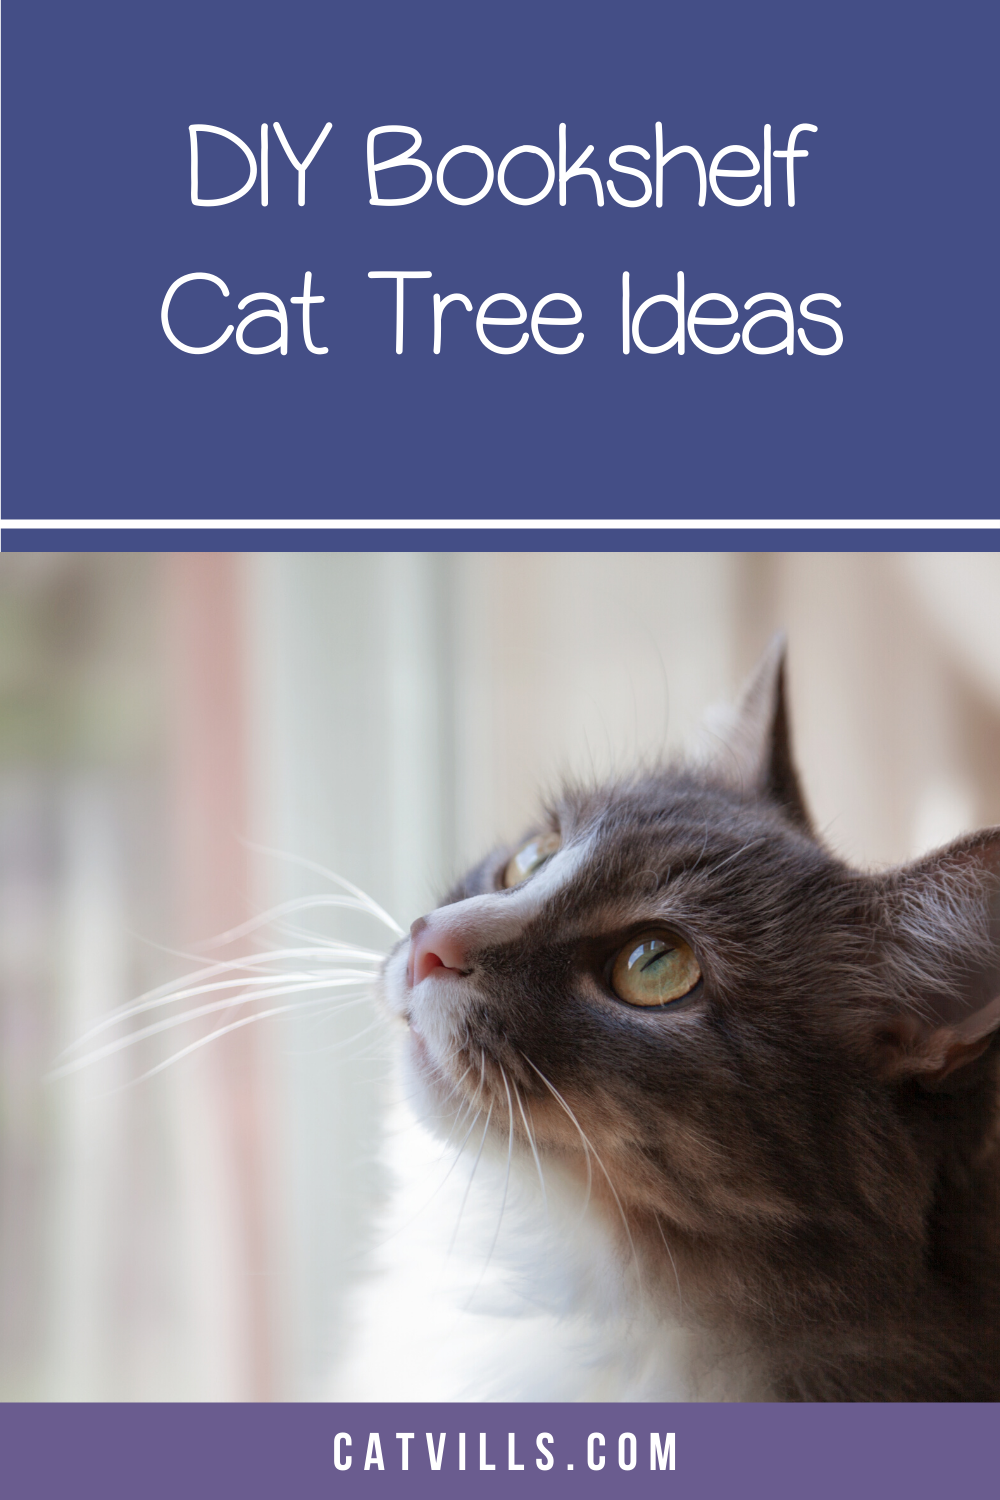 6 Epic Bookshelf Cat Trees To Buy Or Diy Catvills In 2020 Cats Introducing A New Cat Pregnant Cat